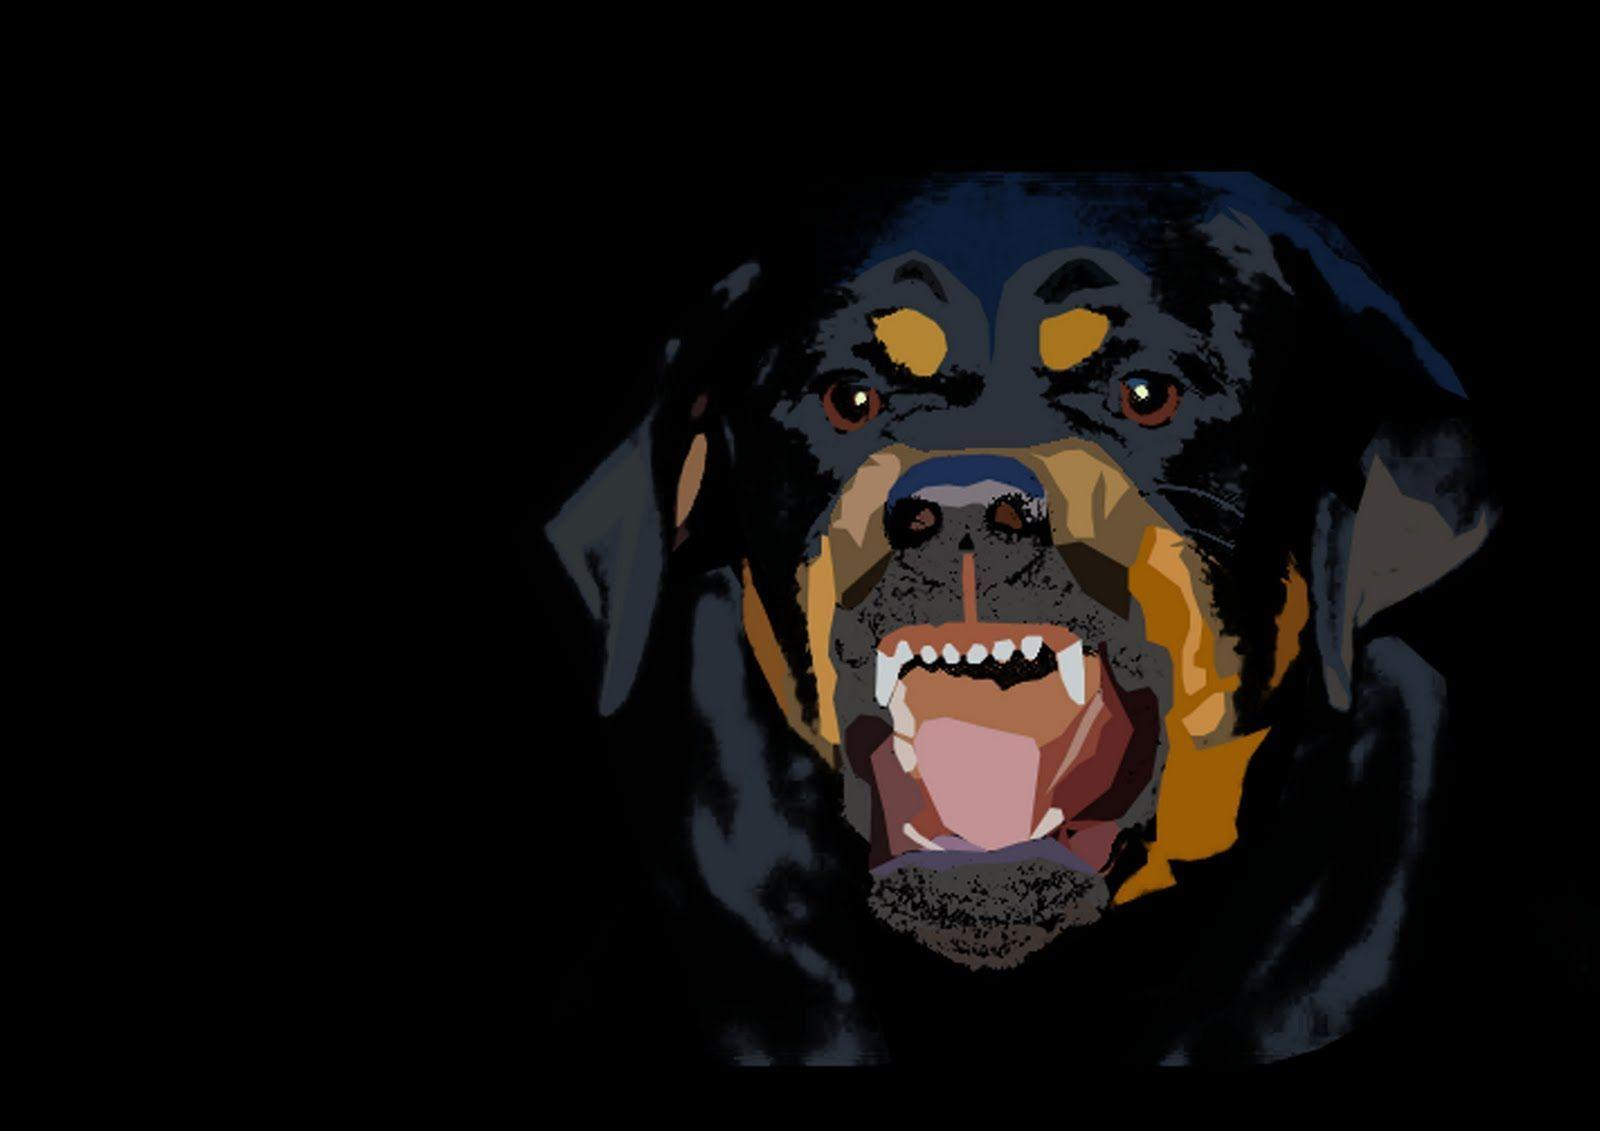 Wallpapers For > Givenchy Rottweiler Wallpaper